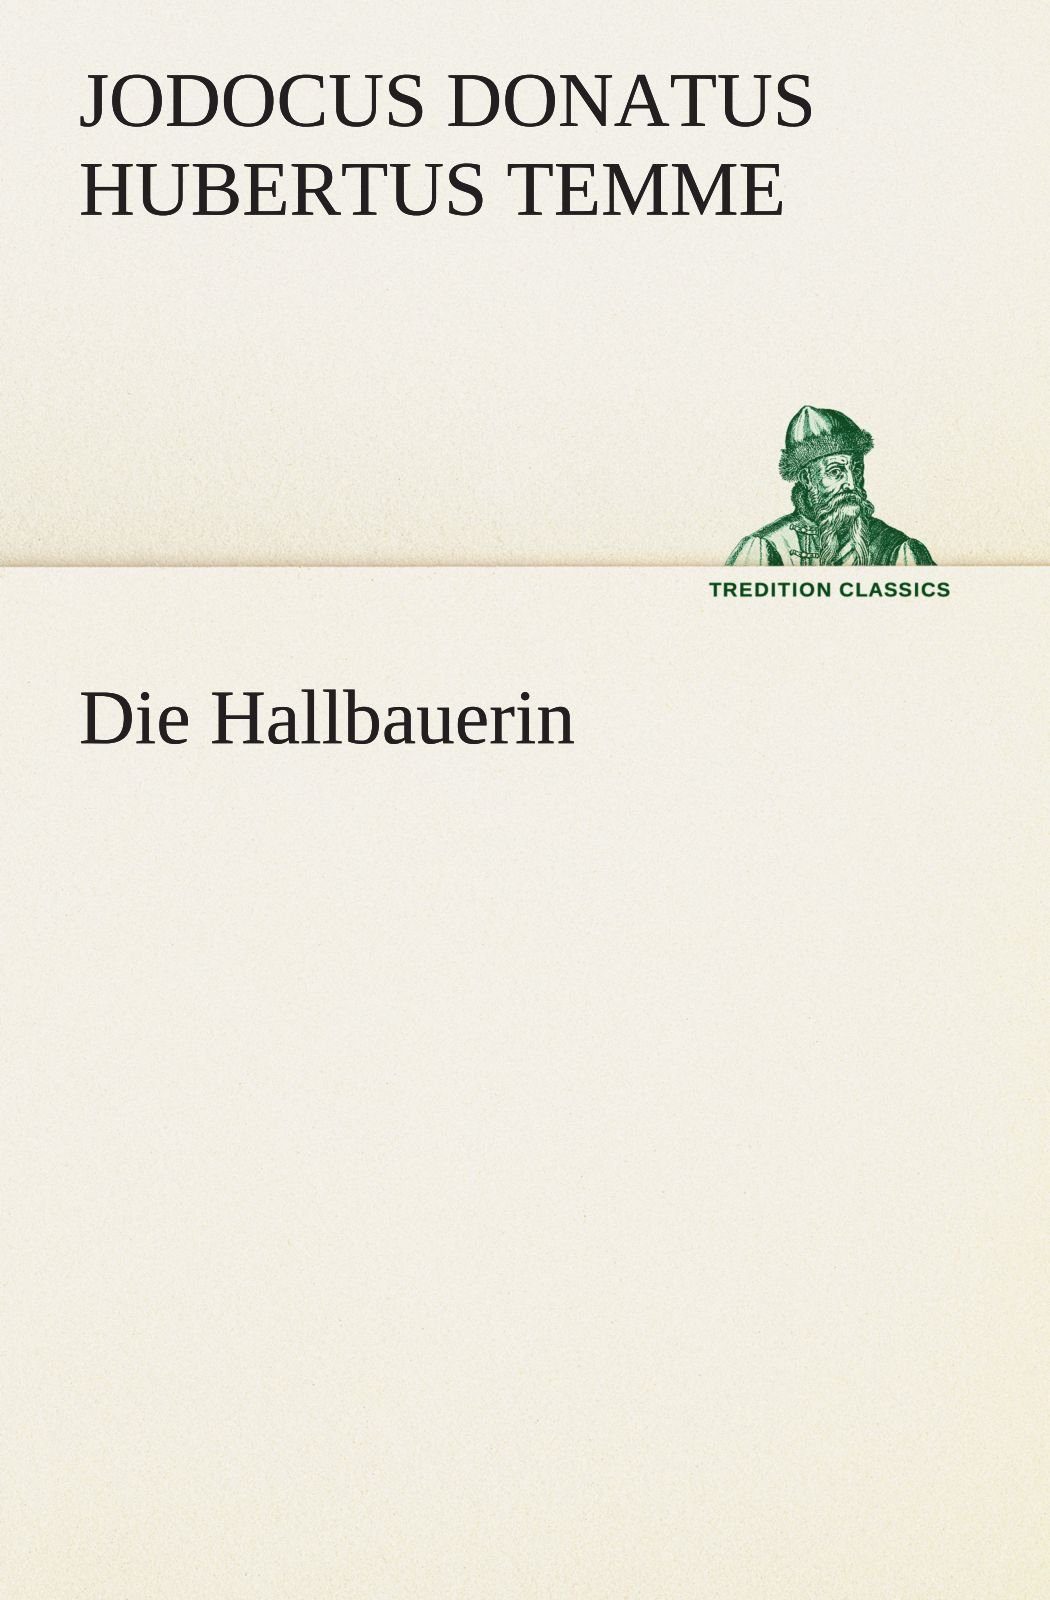 Die Hallbauerin (TREDITION CLASSICS) (German Edition) PDF